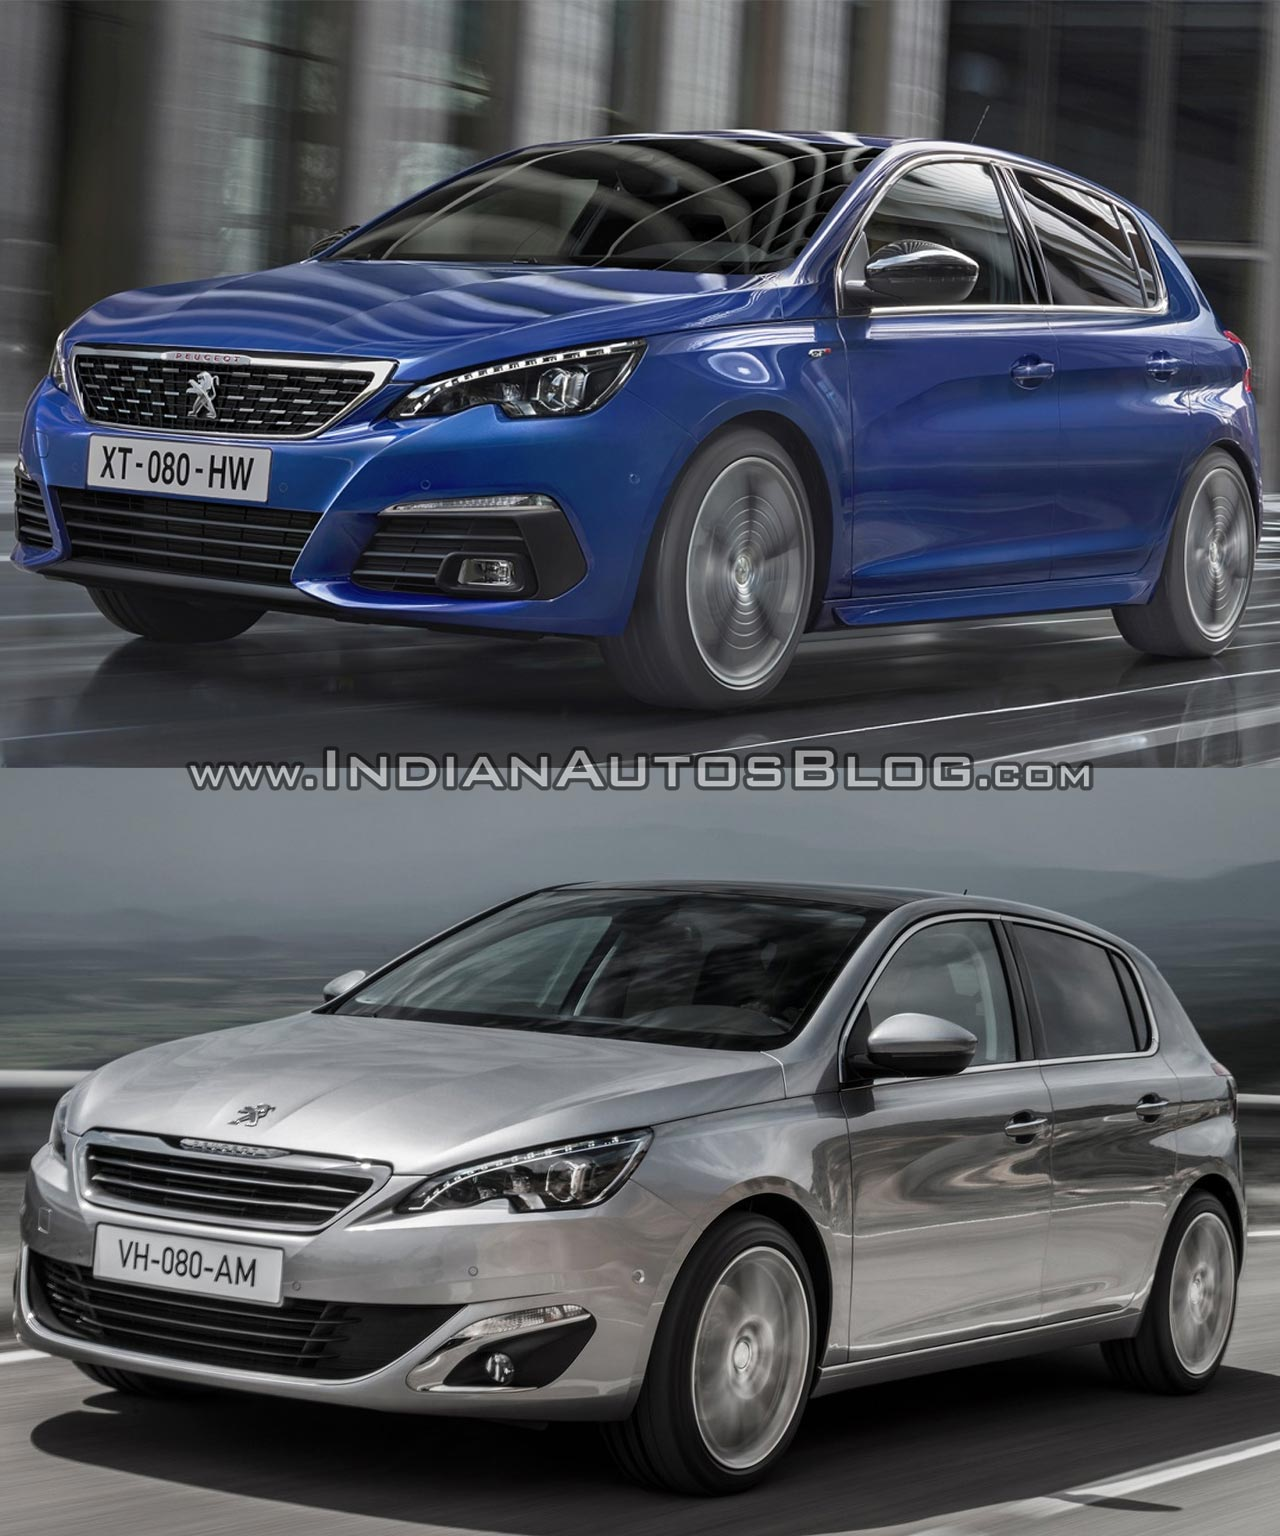 2017 Peugeot 308 vs. 2013 Peugeot 308 front three quarters